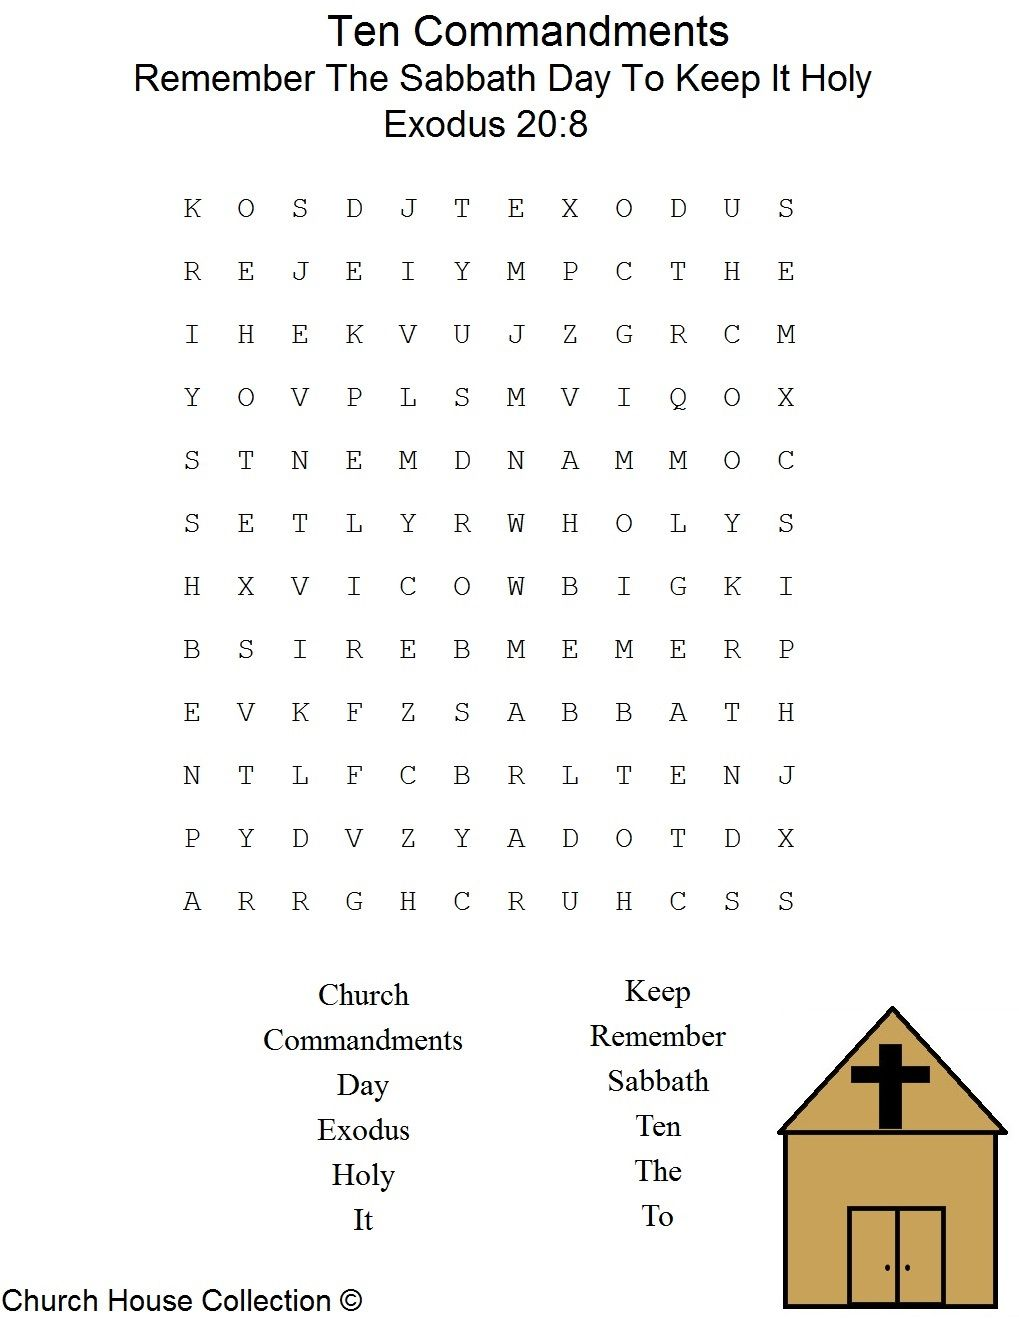 Remember The Sabbath Day To Keep It Holy Word Search Puzzle For